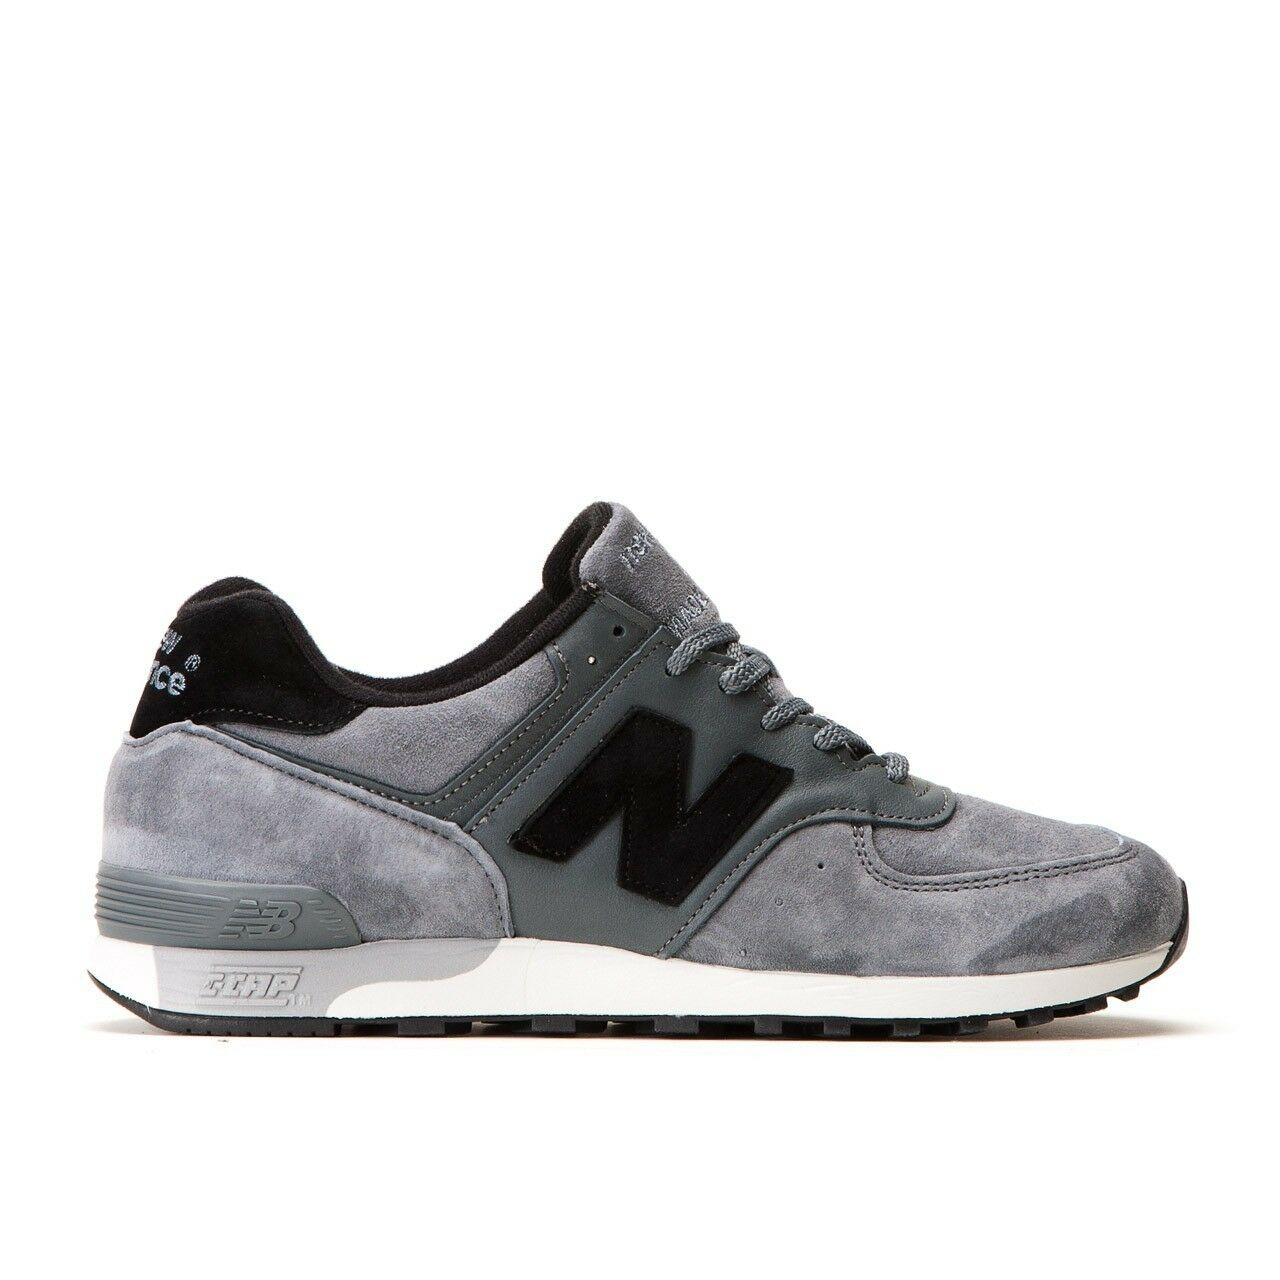 New Balance Mens shoes Fashion Sneakers M 576 PLG Trainers - New In Box